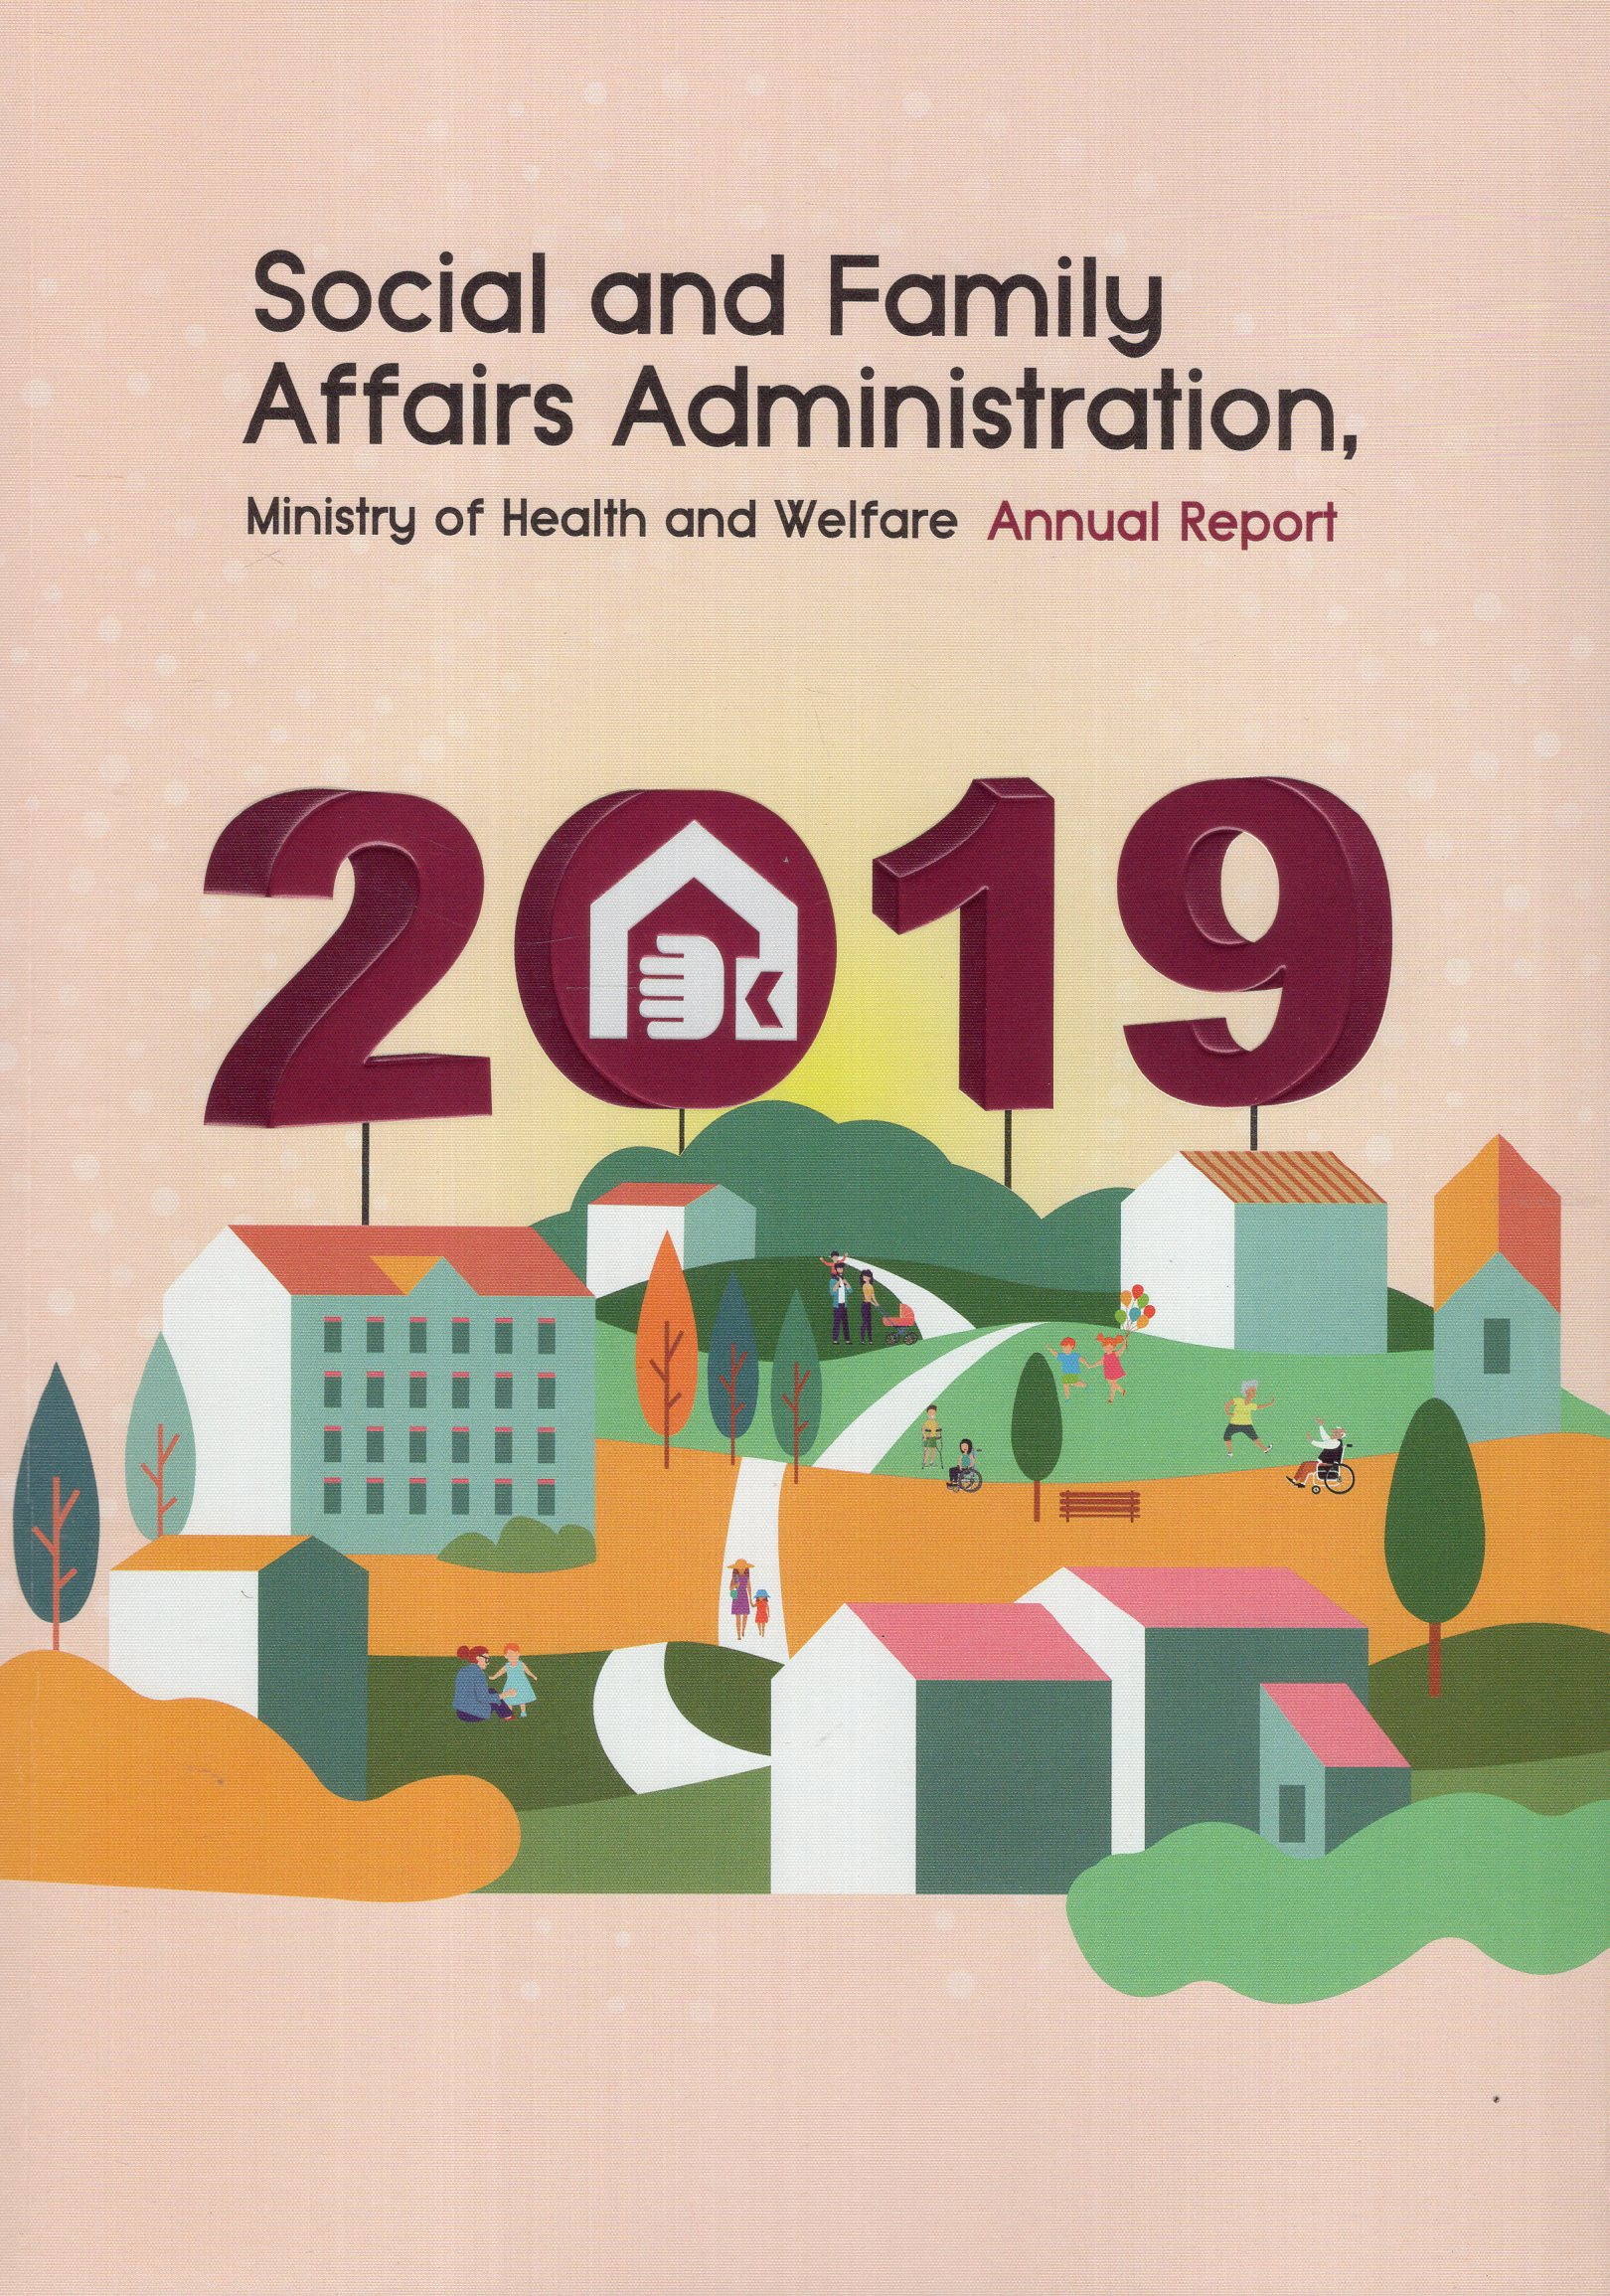 Social and Family Affairs Administration,Ministry of Health and Welfare annual report. 2019